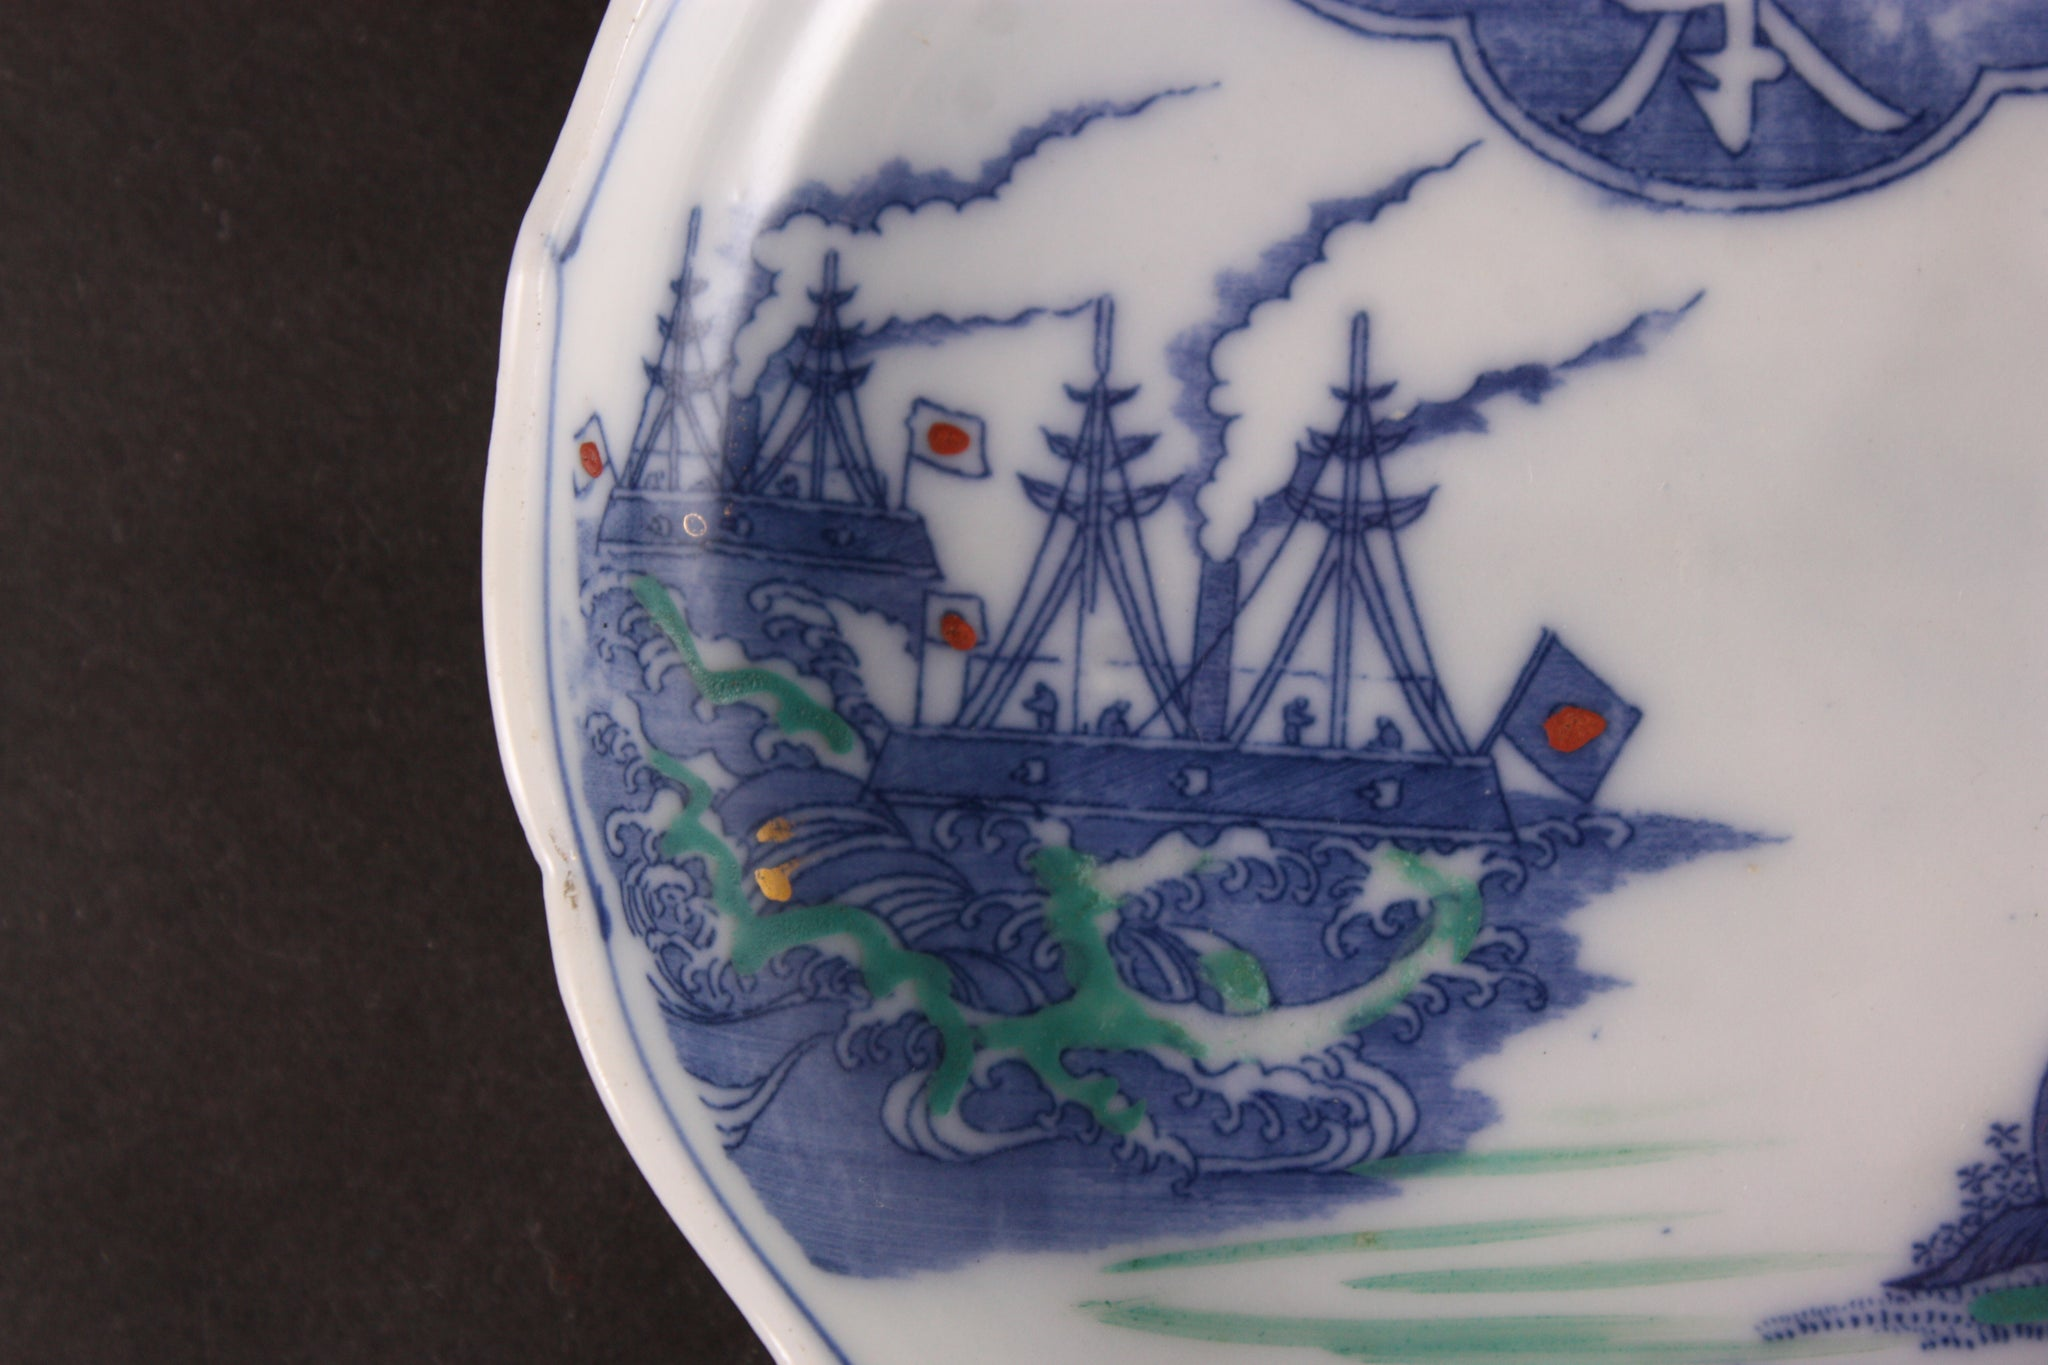 Antique Japanese 1895 Sino Japanese War Victory Dish